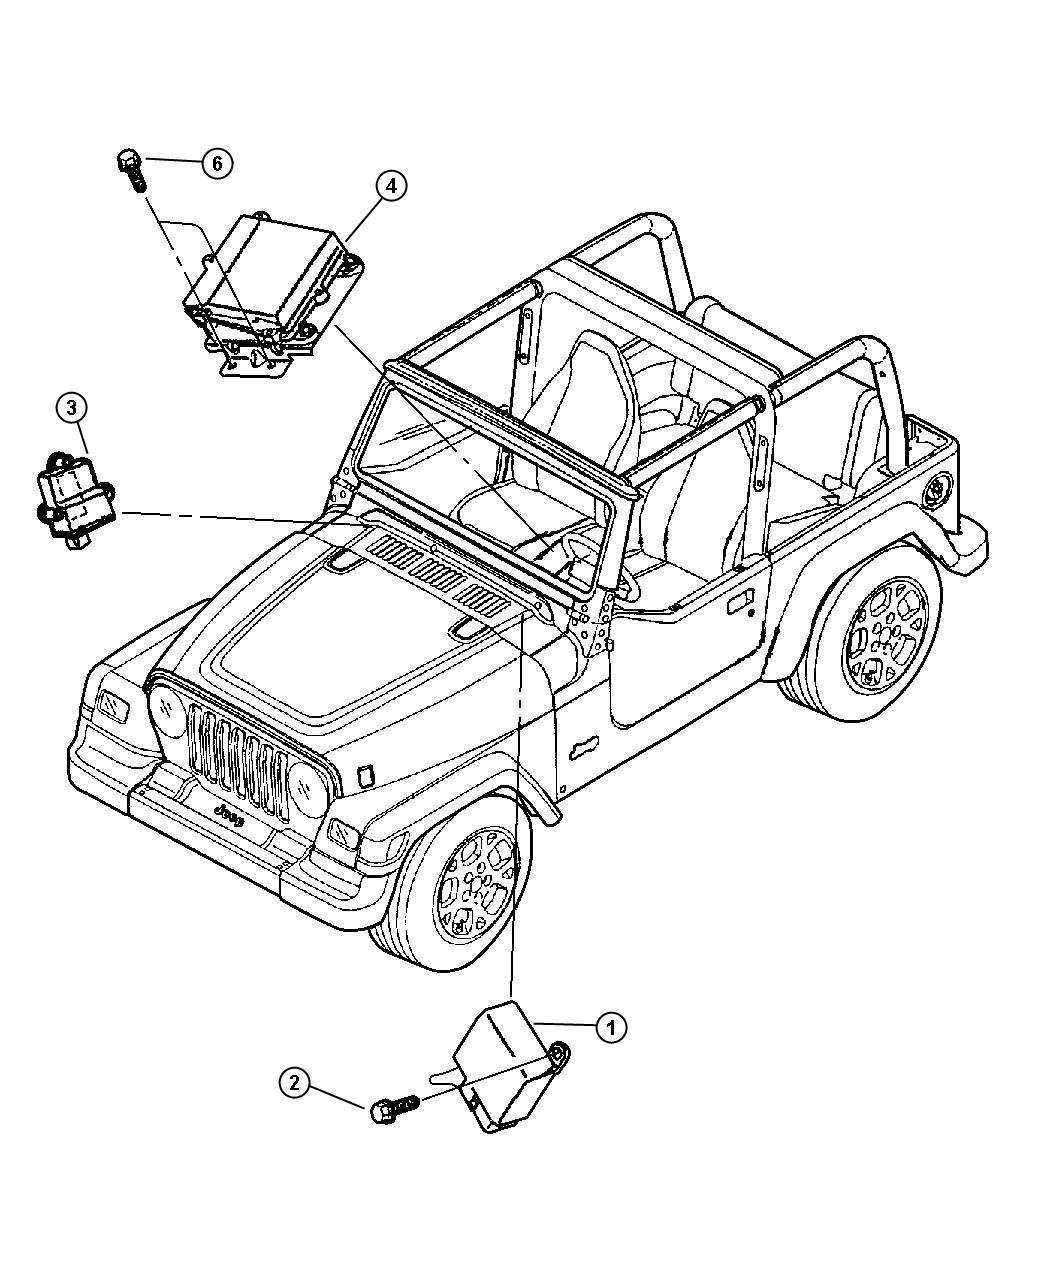 Jeep Wrangler Module Immobilizer Located On The